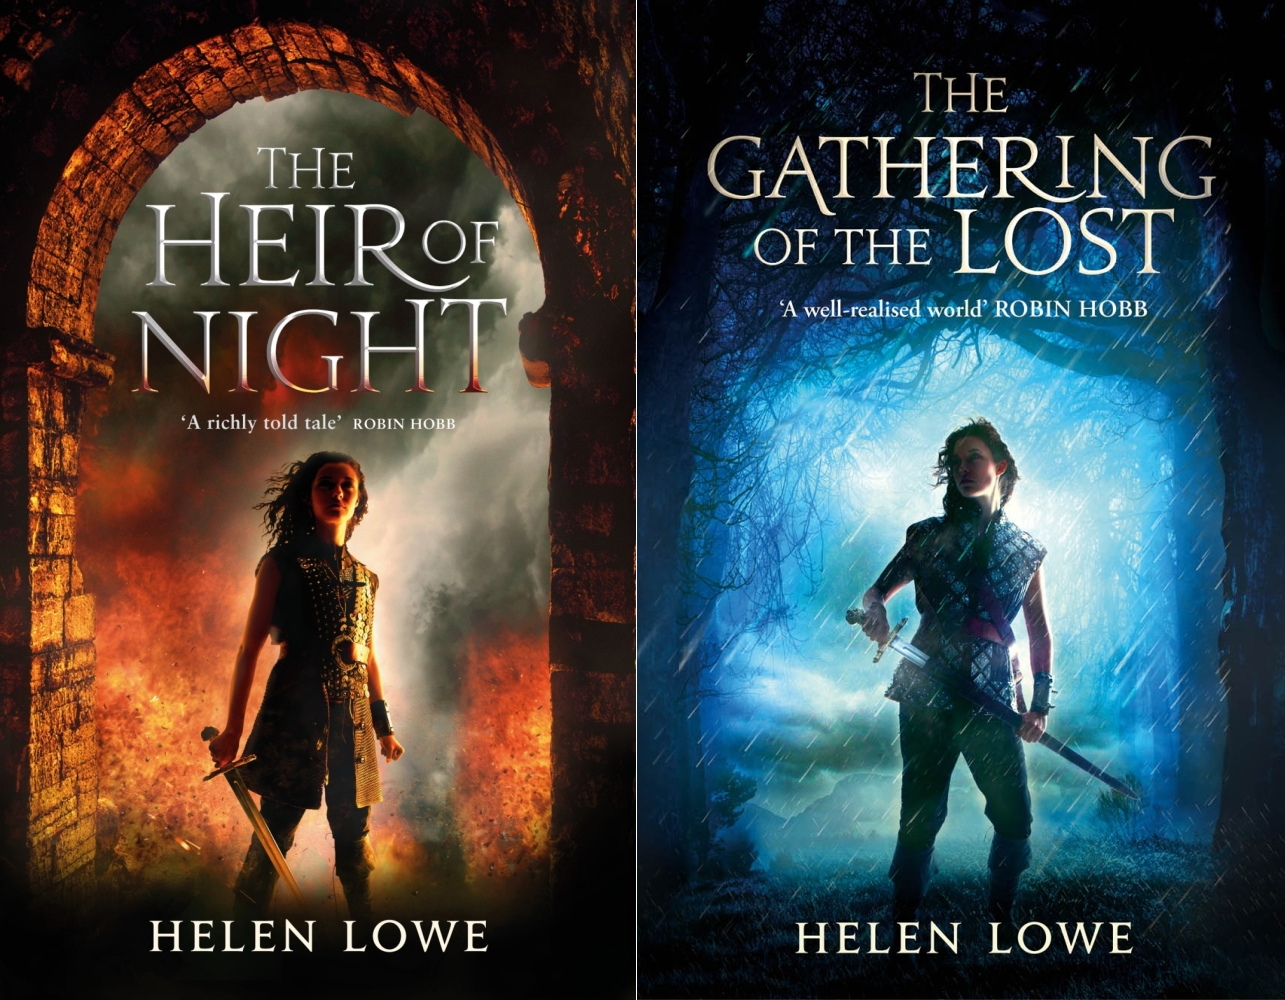 Book Cover Fantasy Wiki : Epic fantasy interview swap ian irvine interviews helen